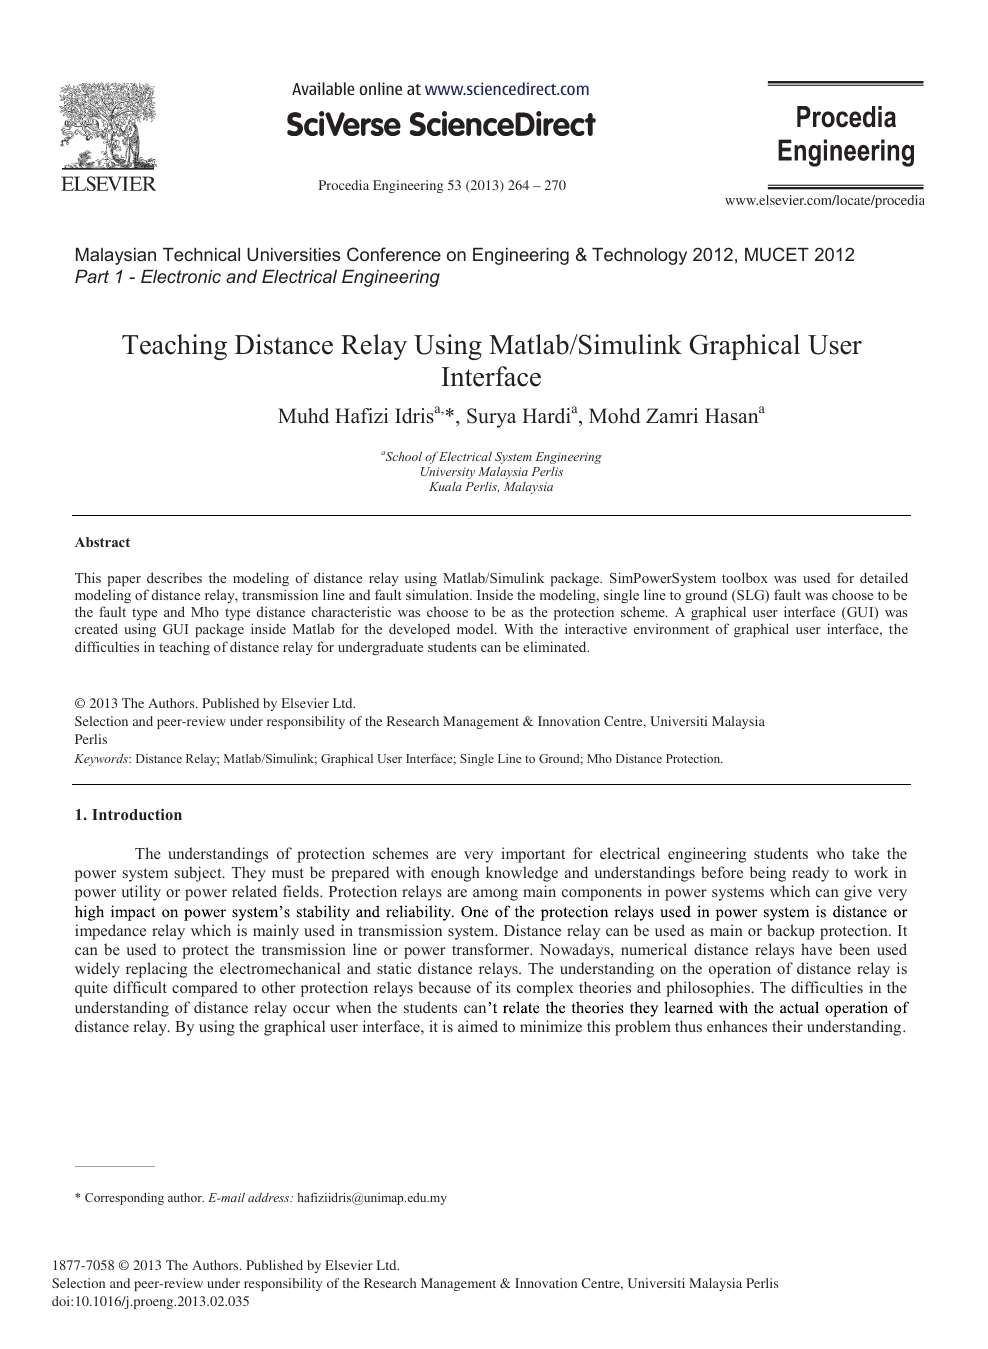 Teaching Distance Relay using Matlab/Simulink Graphical user